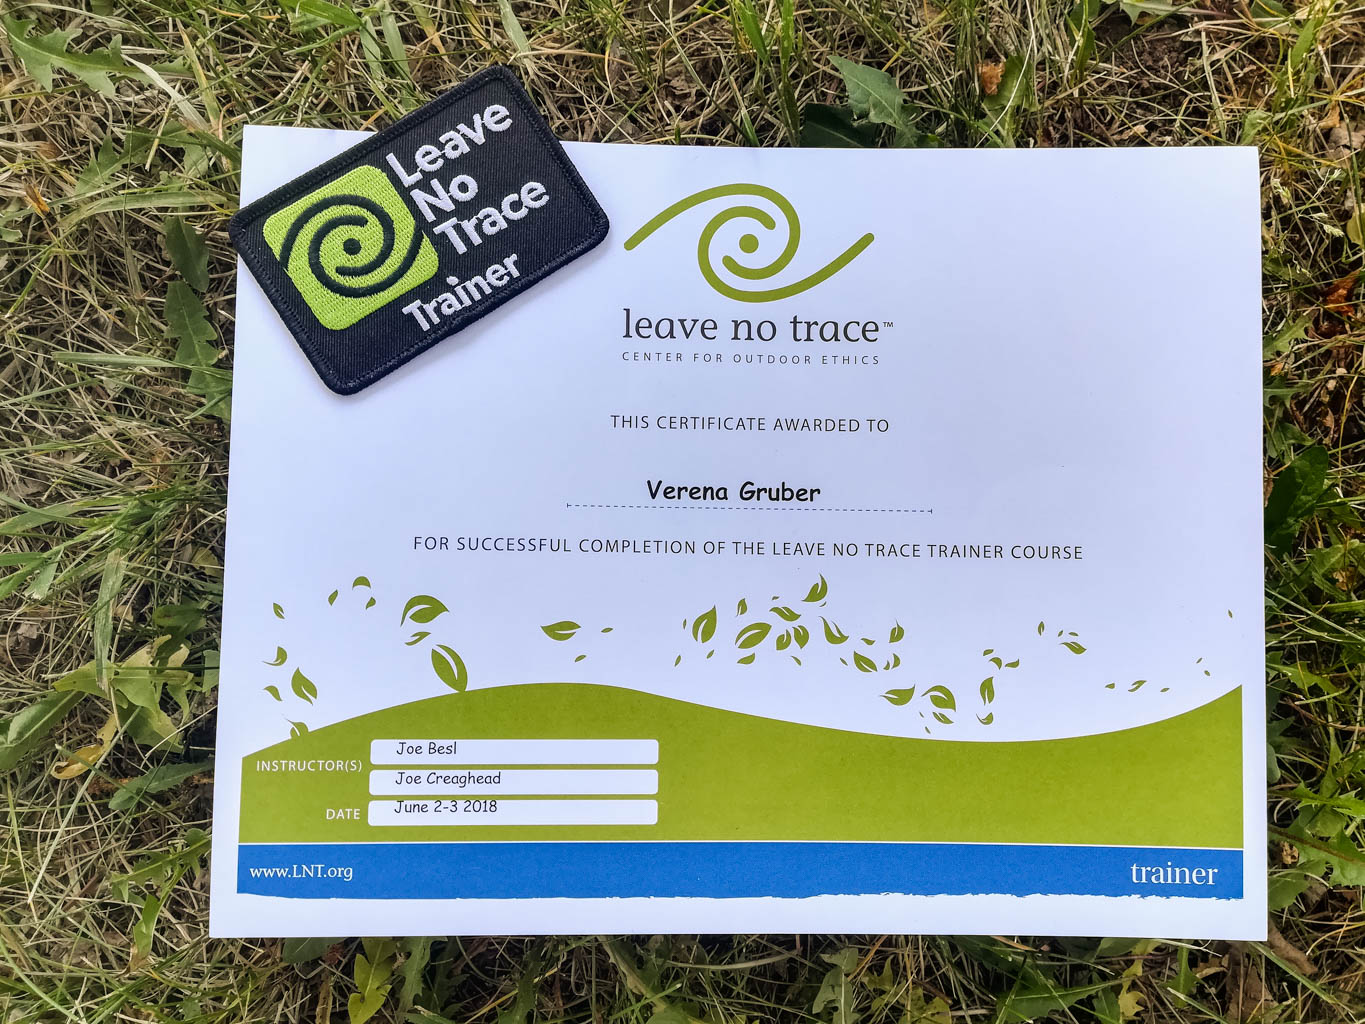 Leave no Trace trainer trraining - 171956.jpg - © European Wilderness Society CC BY-NC-ND 4.0